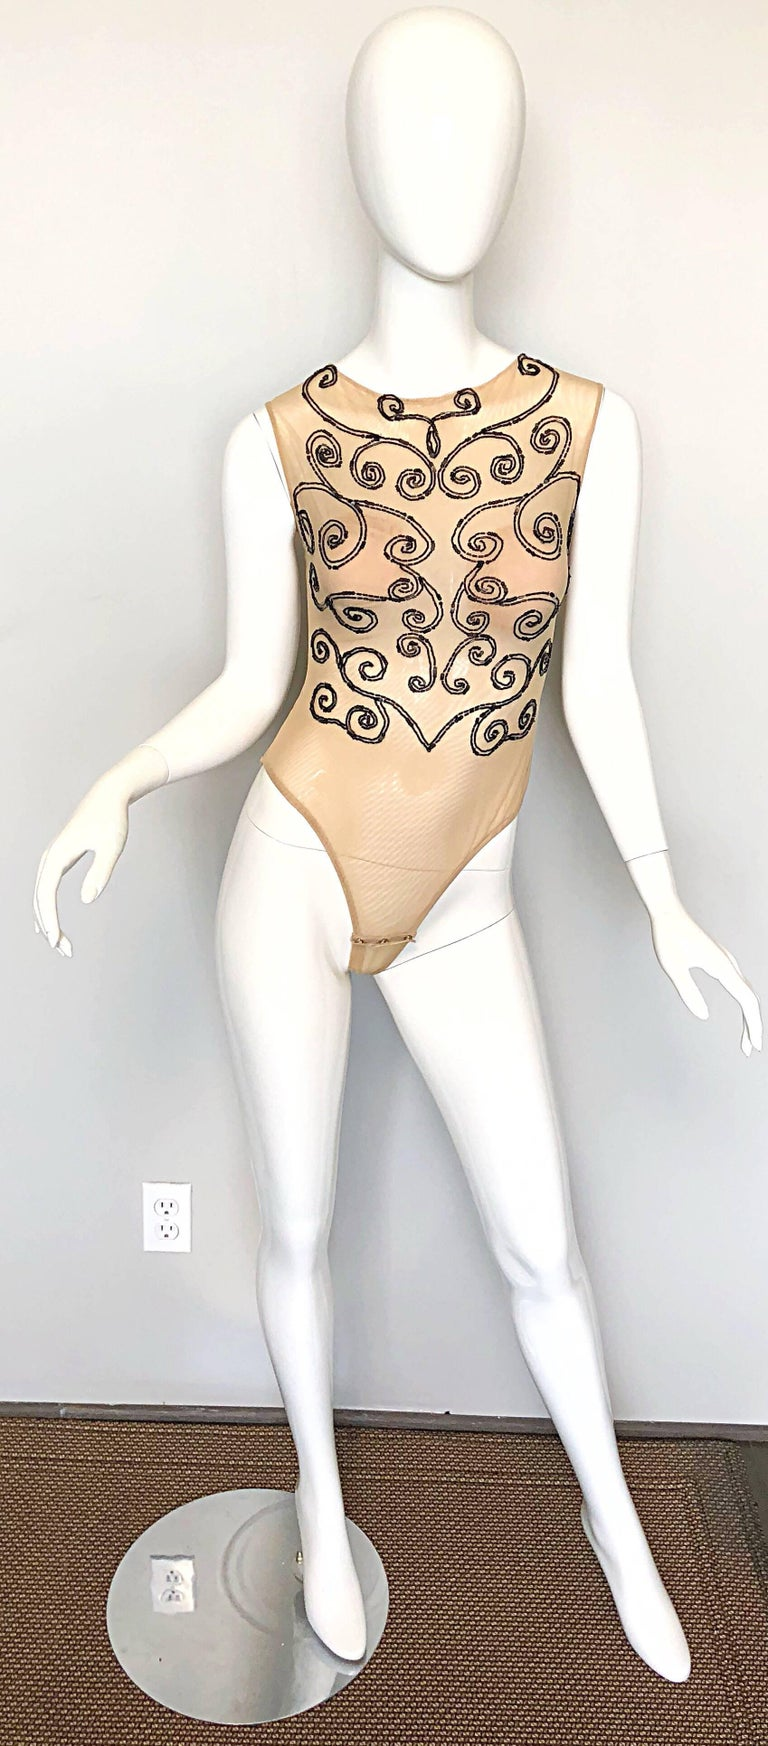 Sexy 1990s C.D GREENE Couture nude and black beaded sheer bodysuit! Features a double layered nude mesh with thousands of hand-sewn black seed beads throughout the front. Hidden zipper up the back with hook-and-eye closure. Built-in nude cups to